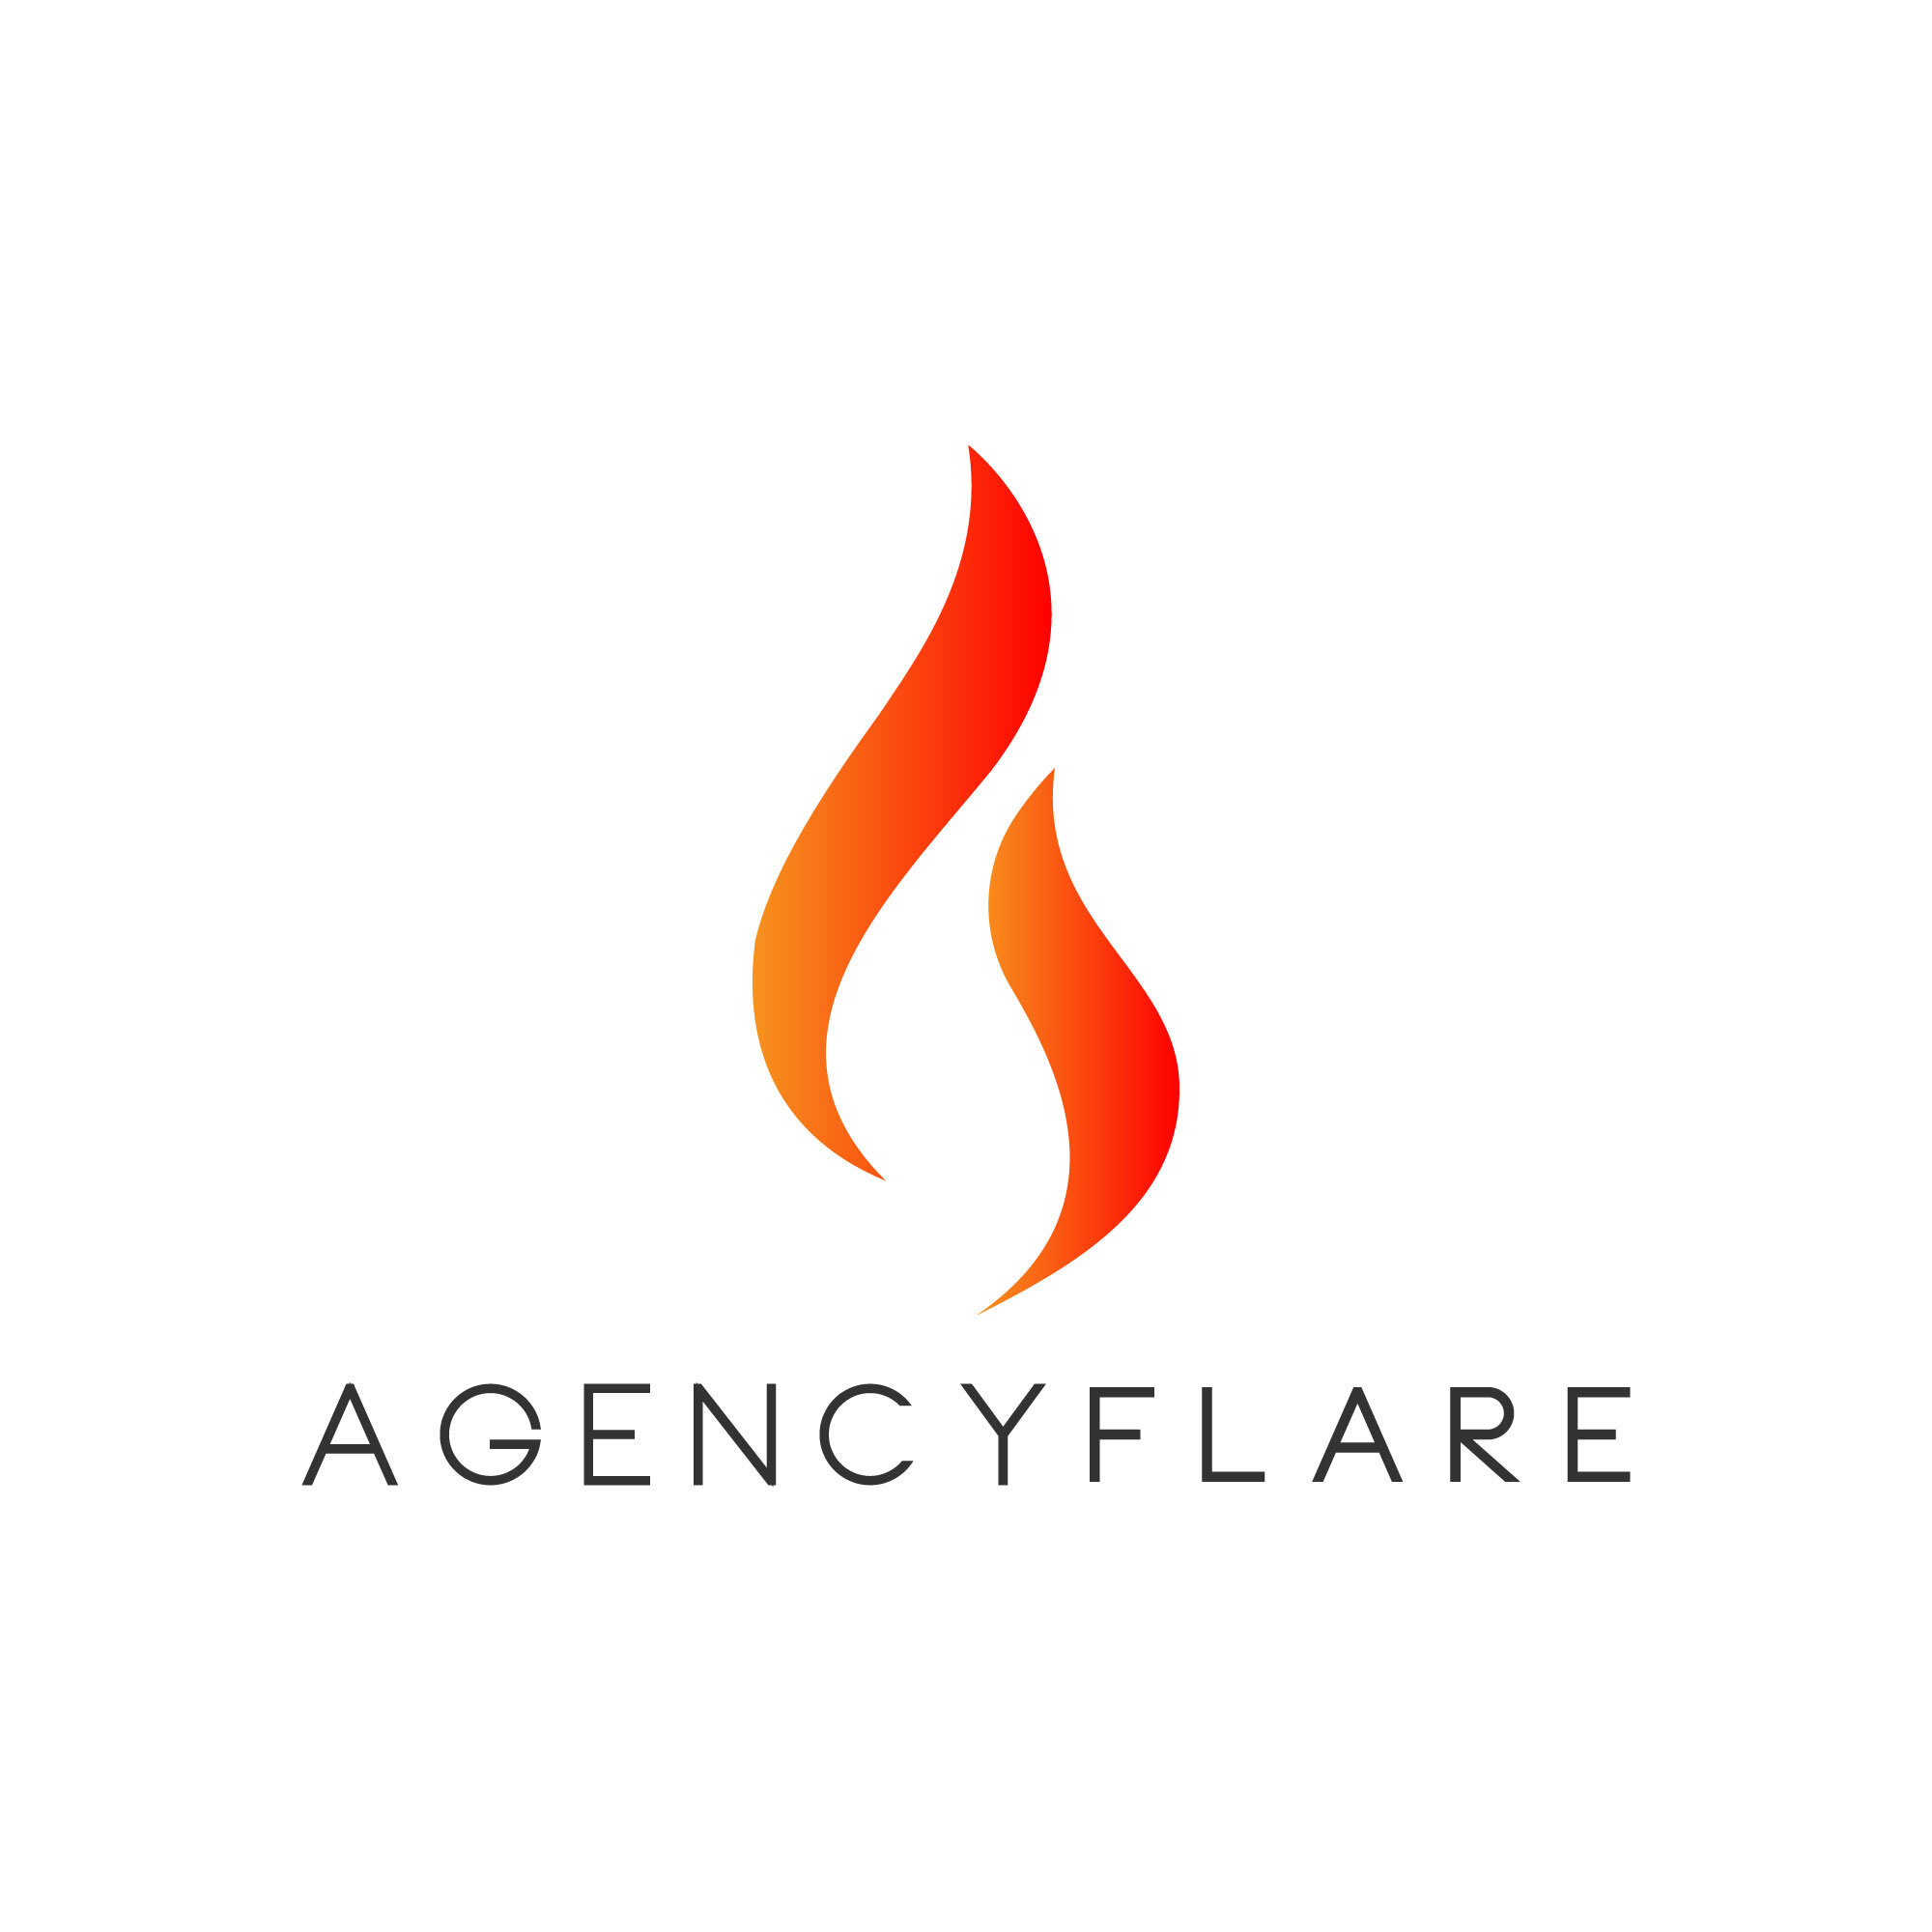 Written By: The AgencyFlare Team - Subscribe to AgencyFlare's exclusive sales insights report here.